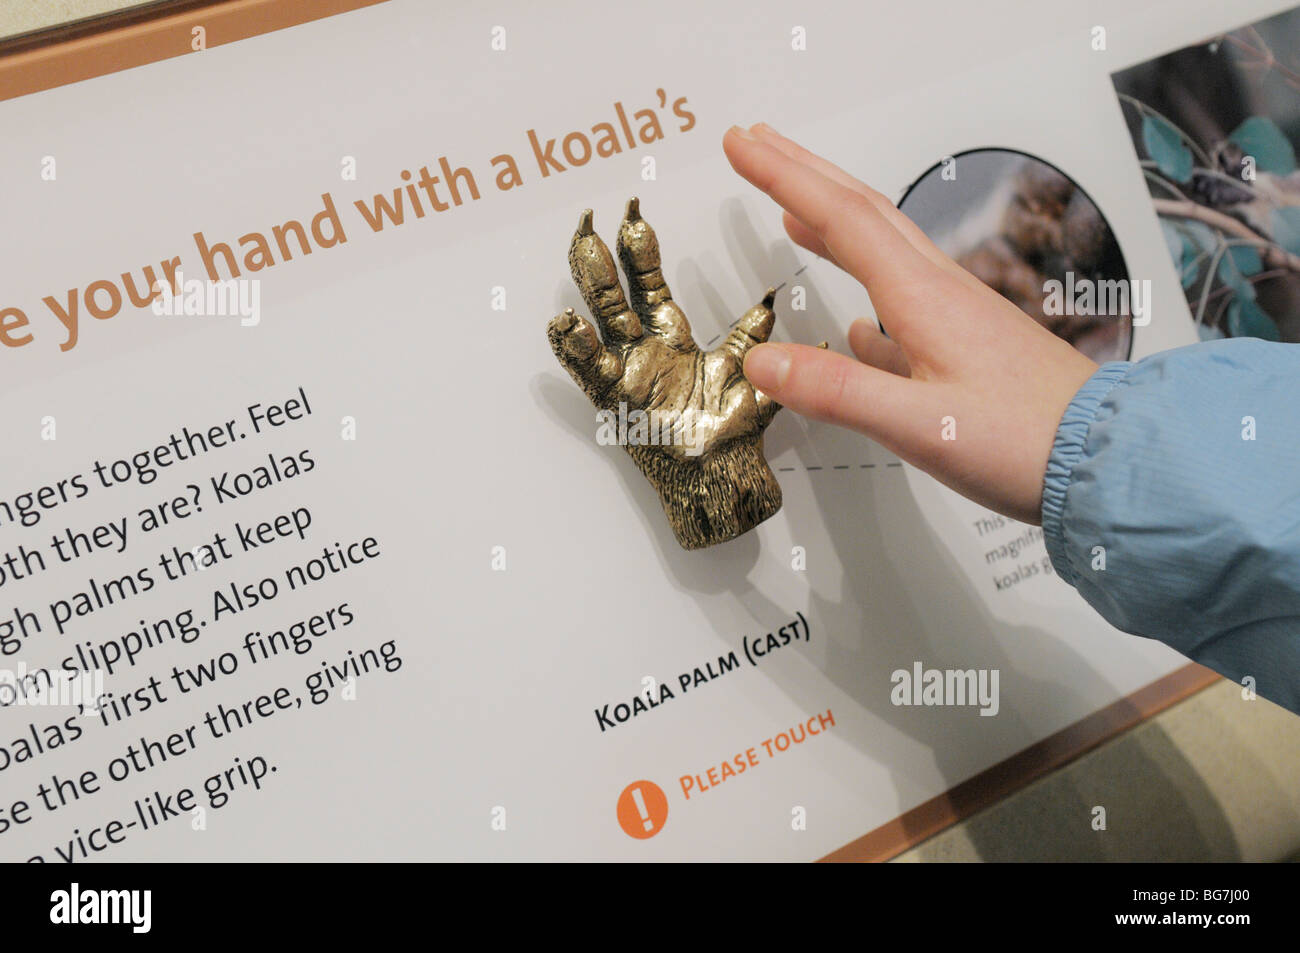 Girl, 10-11, reaches to touch a natural history museum display on mammal appendages (a koala hand) - Smithsonian - Stock Image